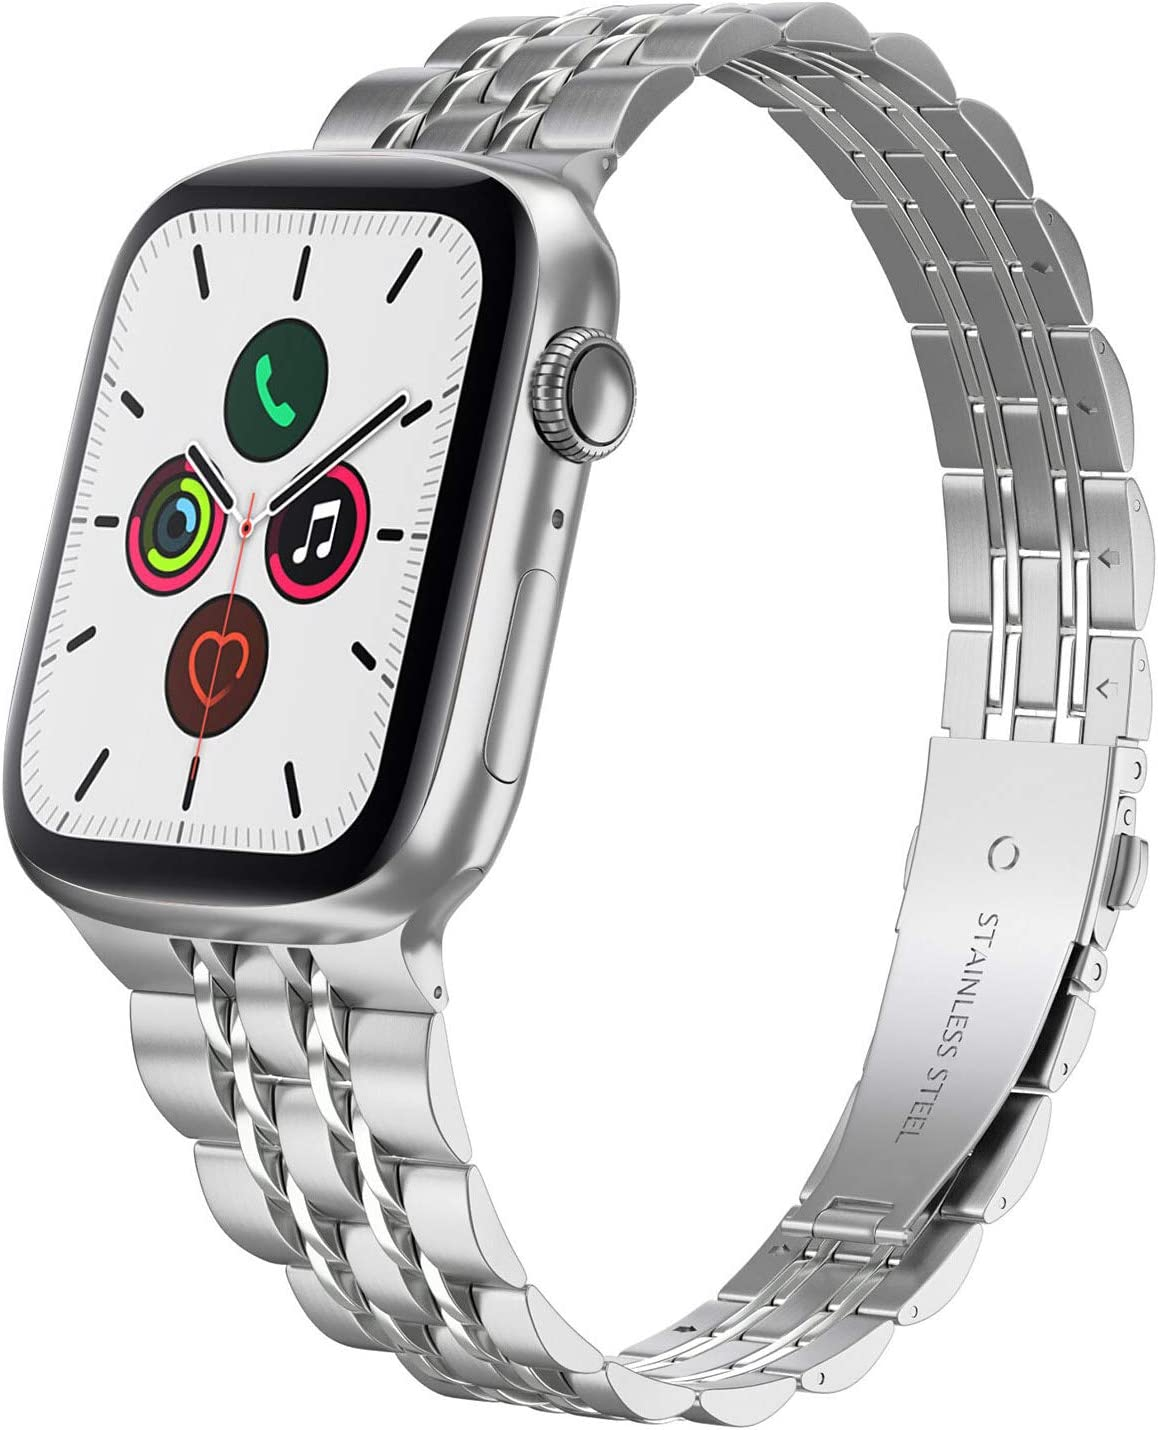 Compatible with Apple Watch Band 40mm Series 6 5 4 38mm Series 3 2 1, Yisdo Iwatch Bracelet Link Band Iphone Watch Band Ultra Thin Stainless Steel Metal Women (38mm/40mm, Silver)